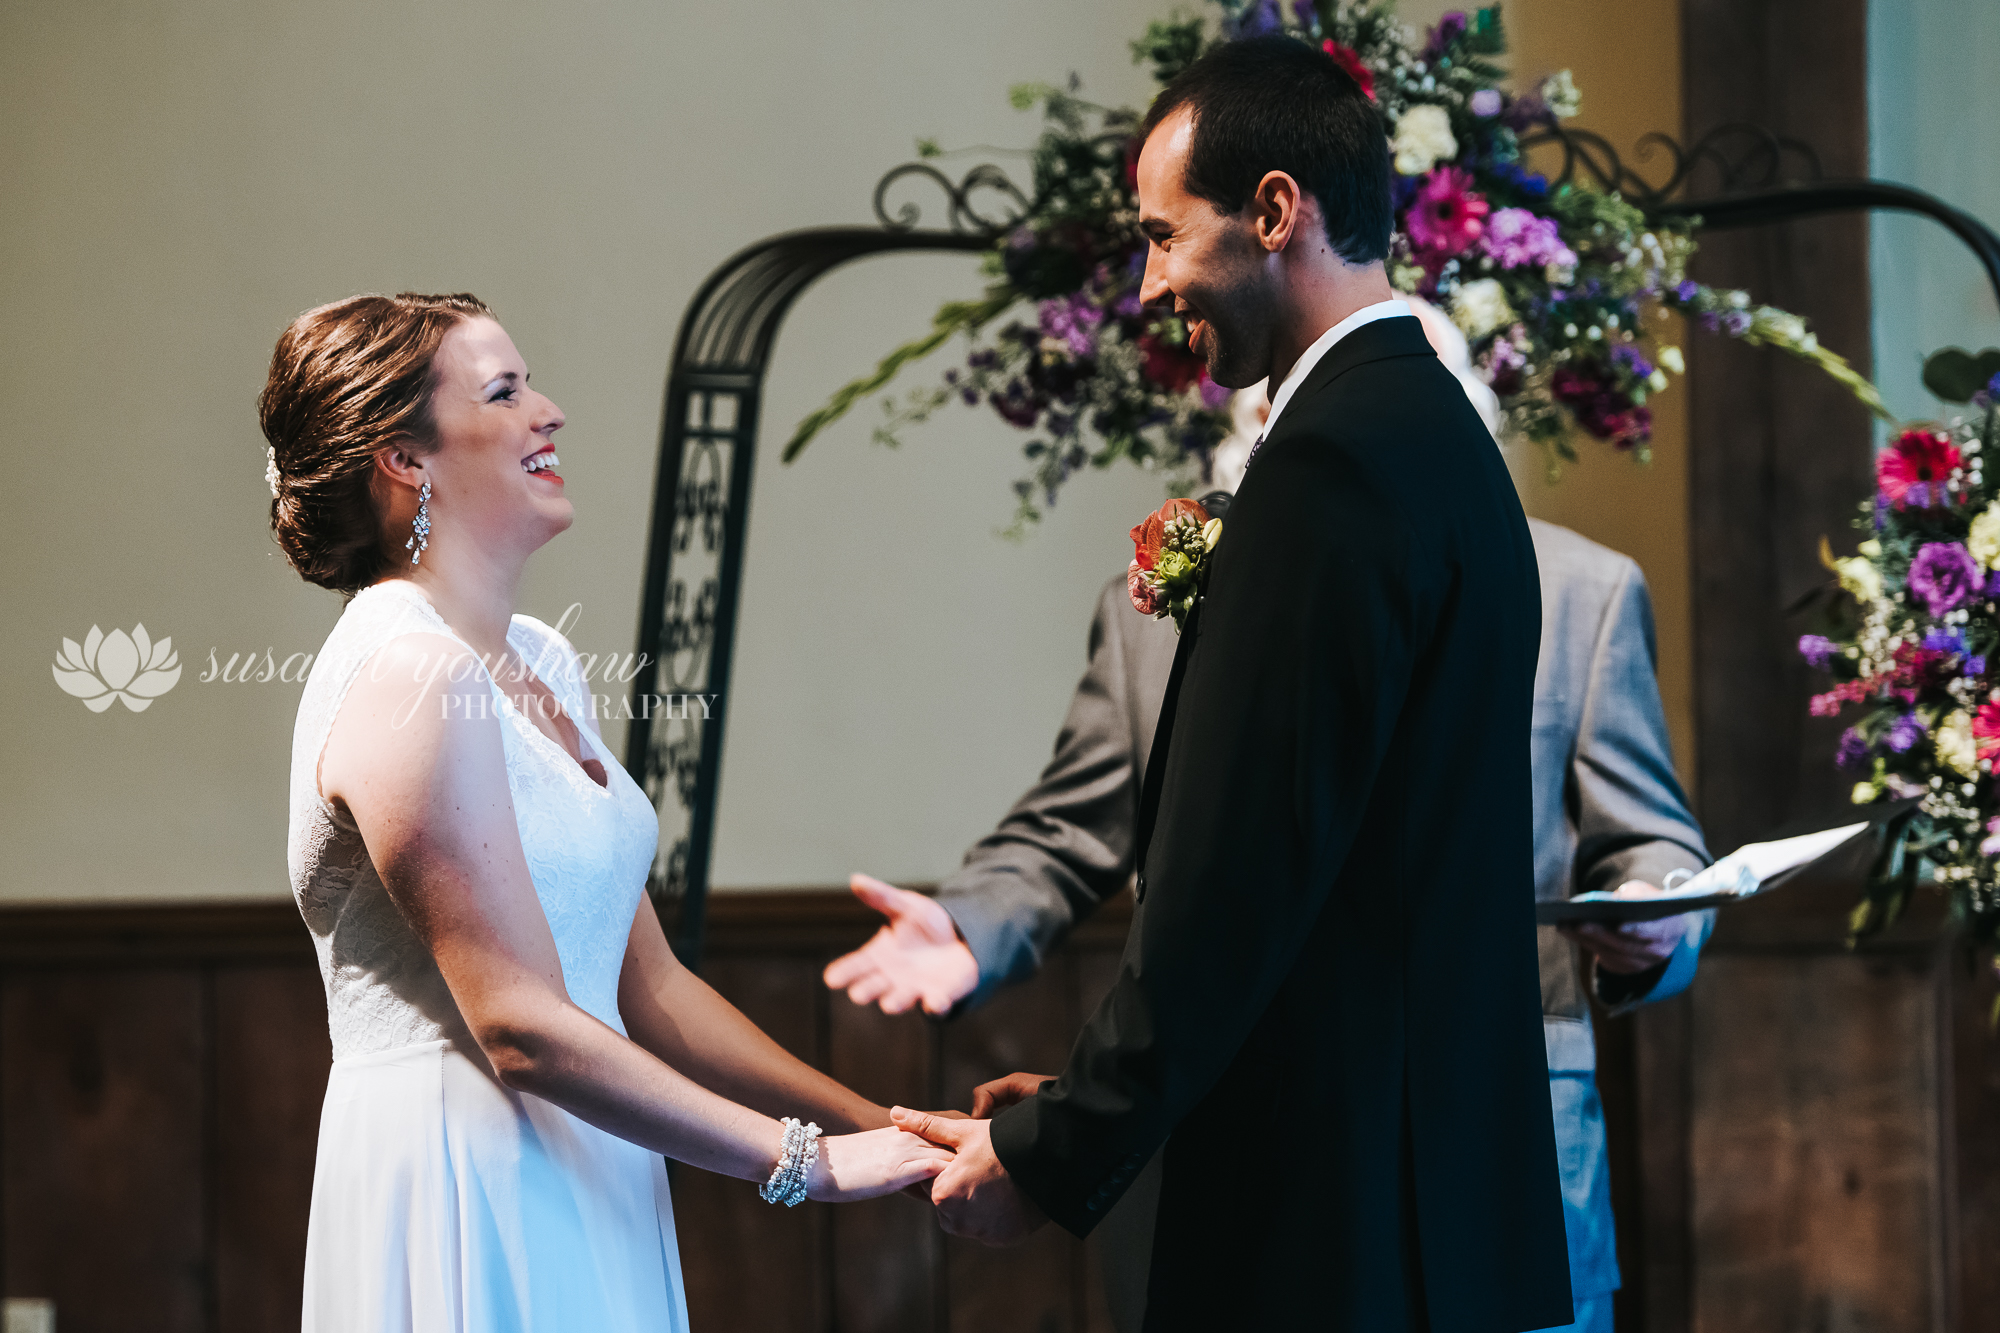 Adena and  Erik Wedding 05-17-2019 SLY Photography-88.jpg